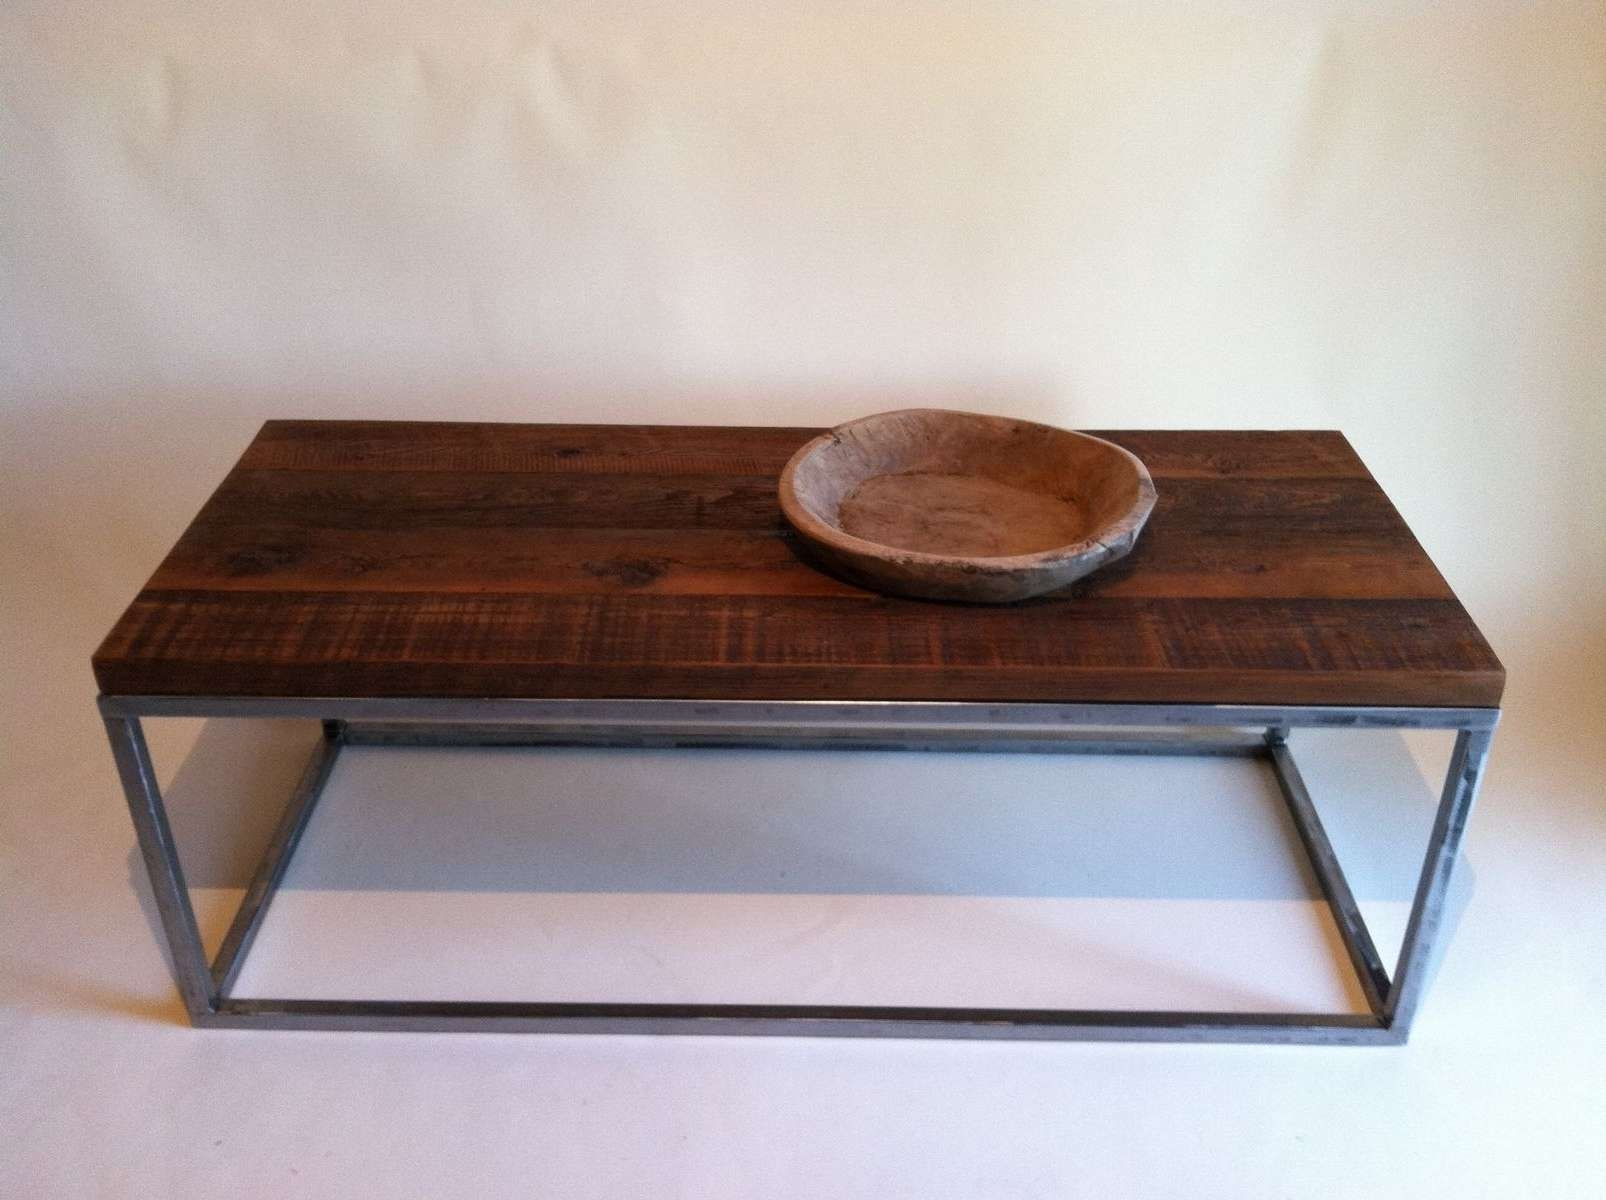 Most Recently Released Metal And Wood Coffee Tables Throughout Handmade Reclaimed Wood Coffee Tables With Rectagular Polished (View 13 of 20)